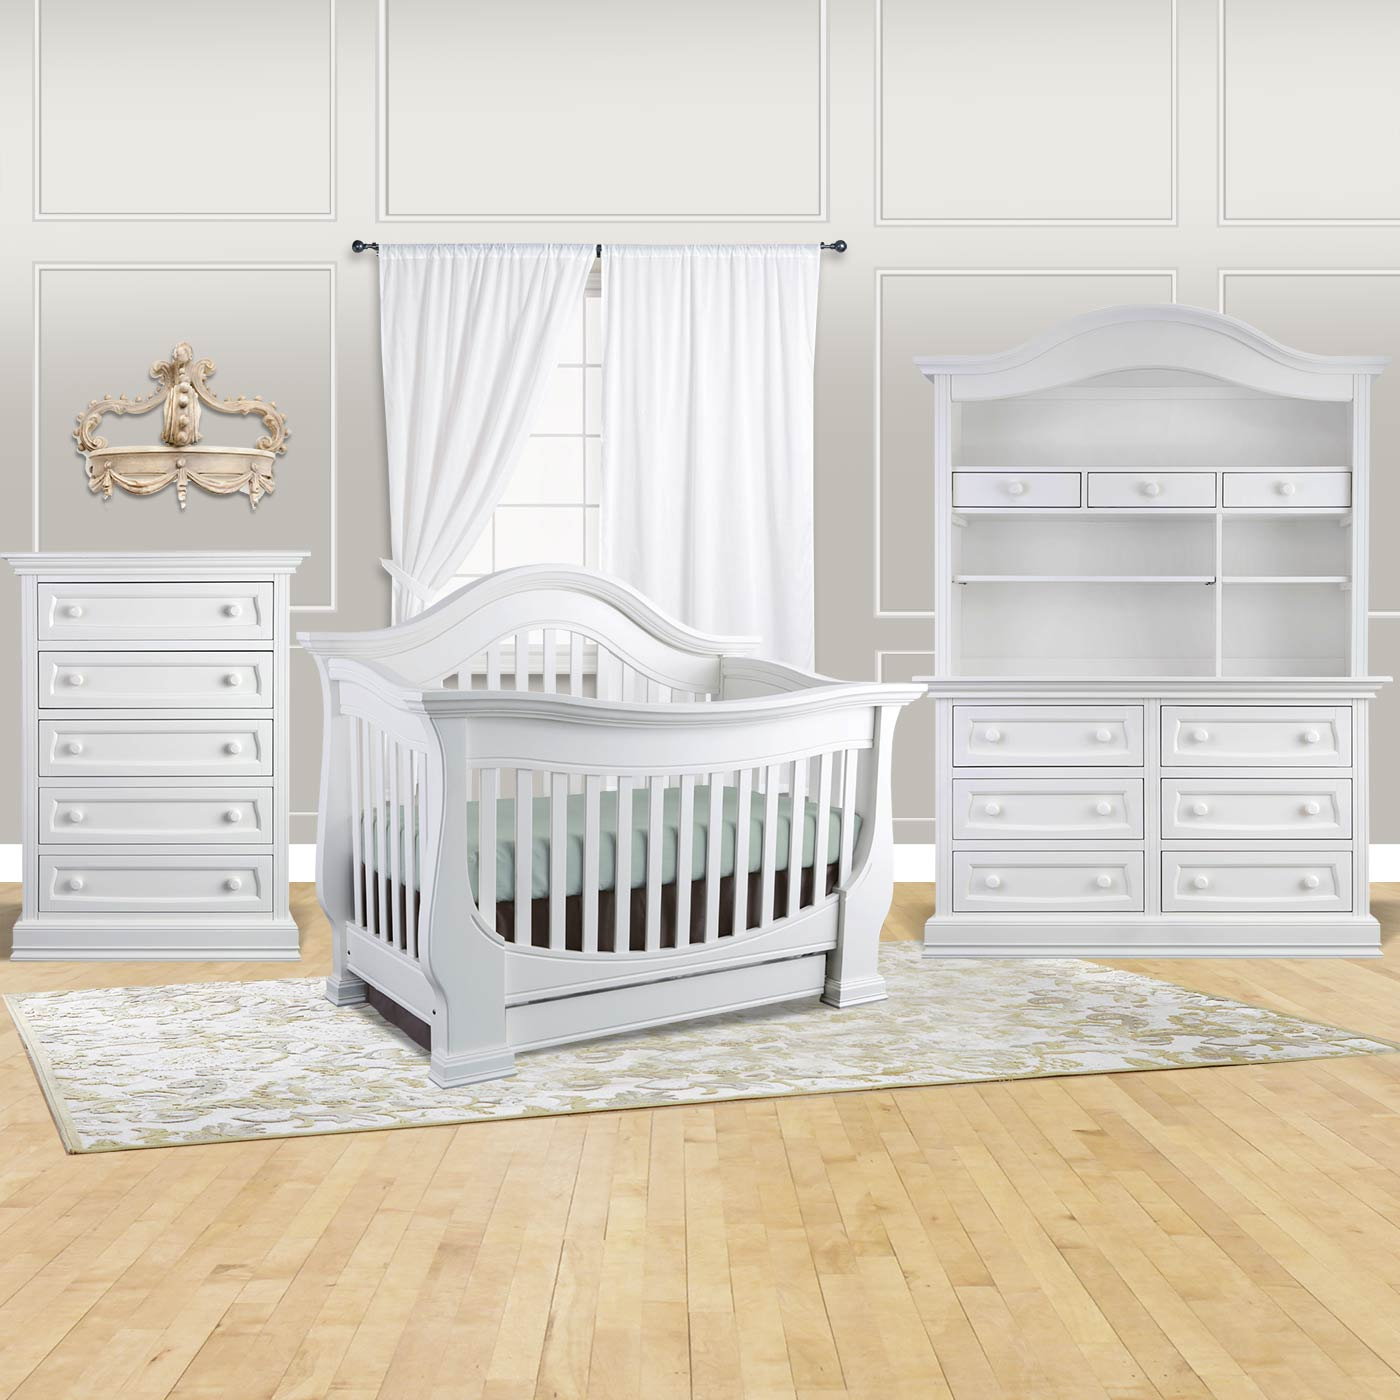 Baby Appleseed 4 Piece Nursery Set   Davenport 3 In 1 Convertible Crib, 5  Drawer Tall Dresser And 6 Drawer Double Dresser With Hutch In Pure White  FREE ...